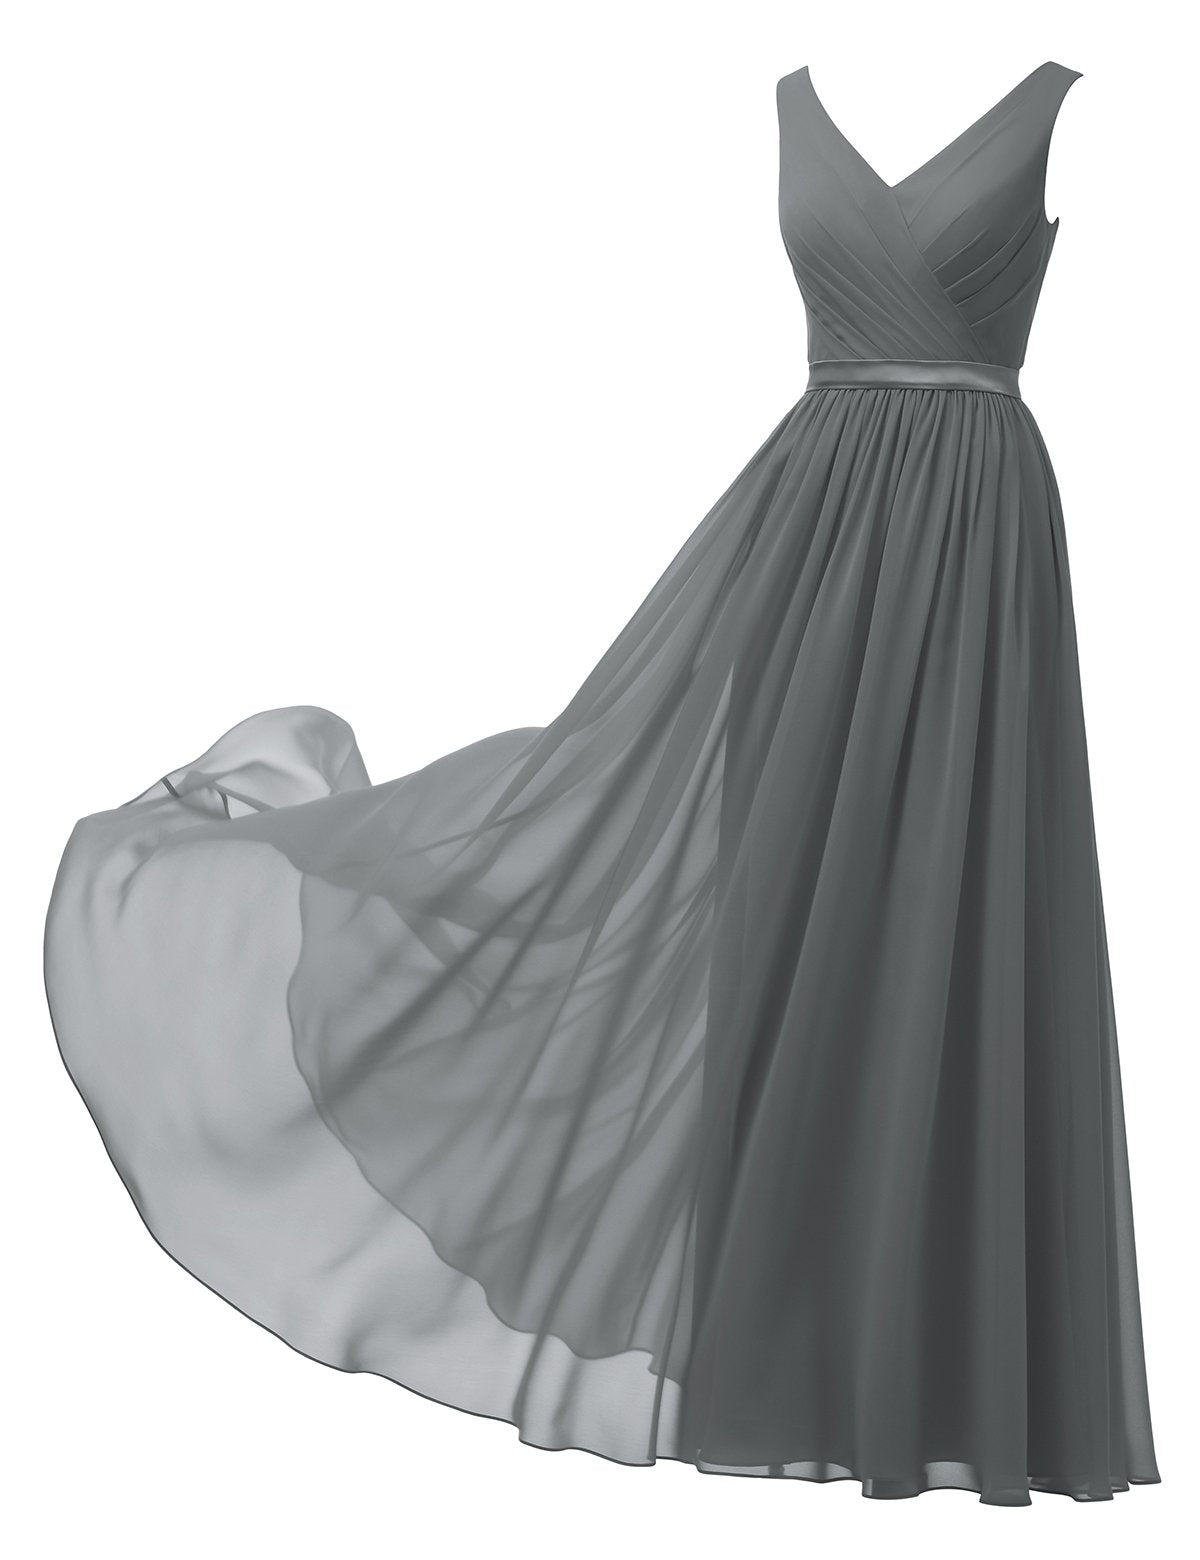 Masquerade Dress V-Neck Chiffon Bridesmaid Dress Long Formal Ball Gown Party Evening Dress Sleeveless